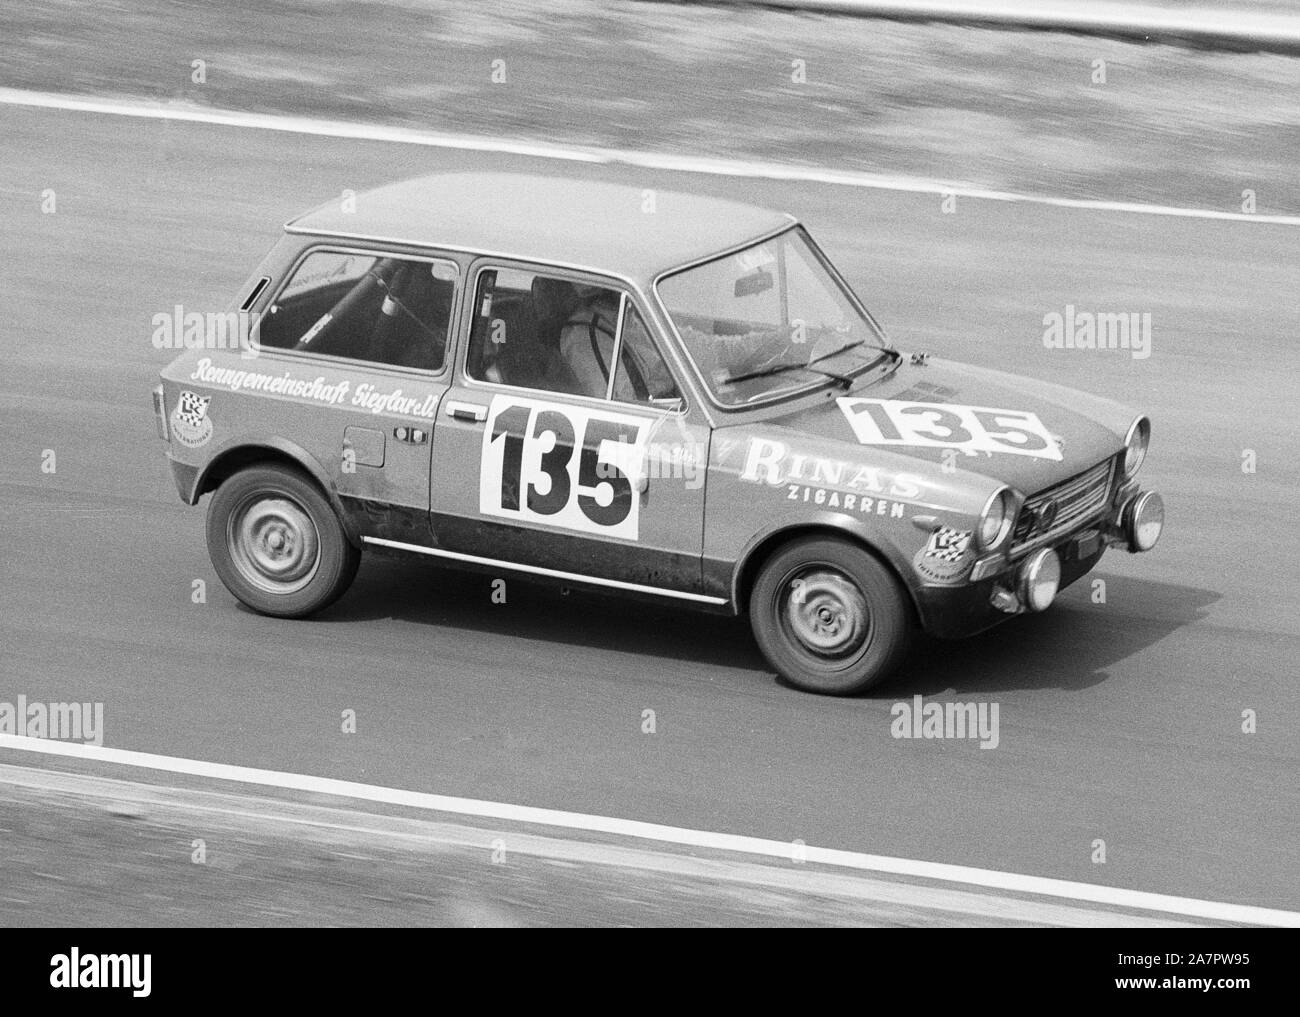 autobianchi-a112-during-1970s-touring-car-race-at-the-nuerburgring-germany-2A7PW95.jpg